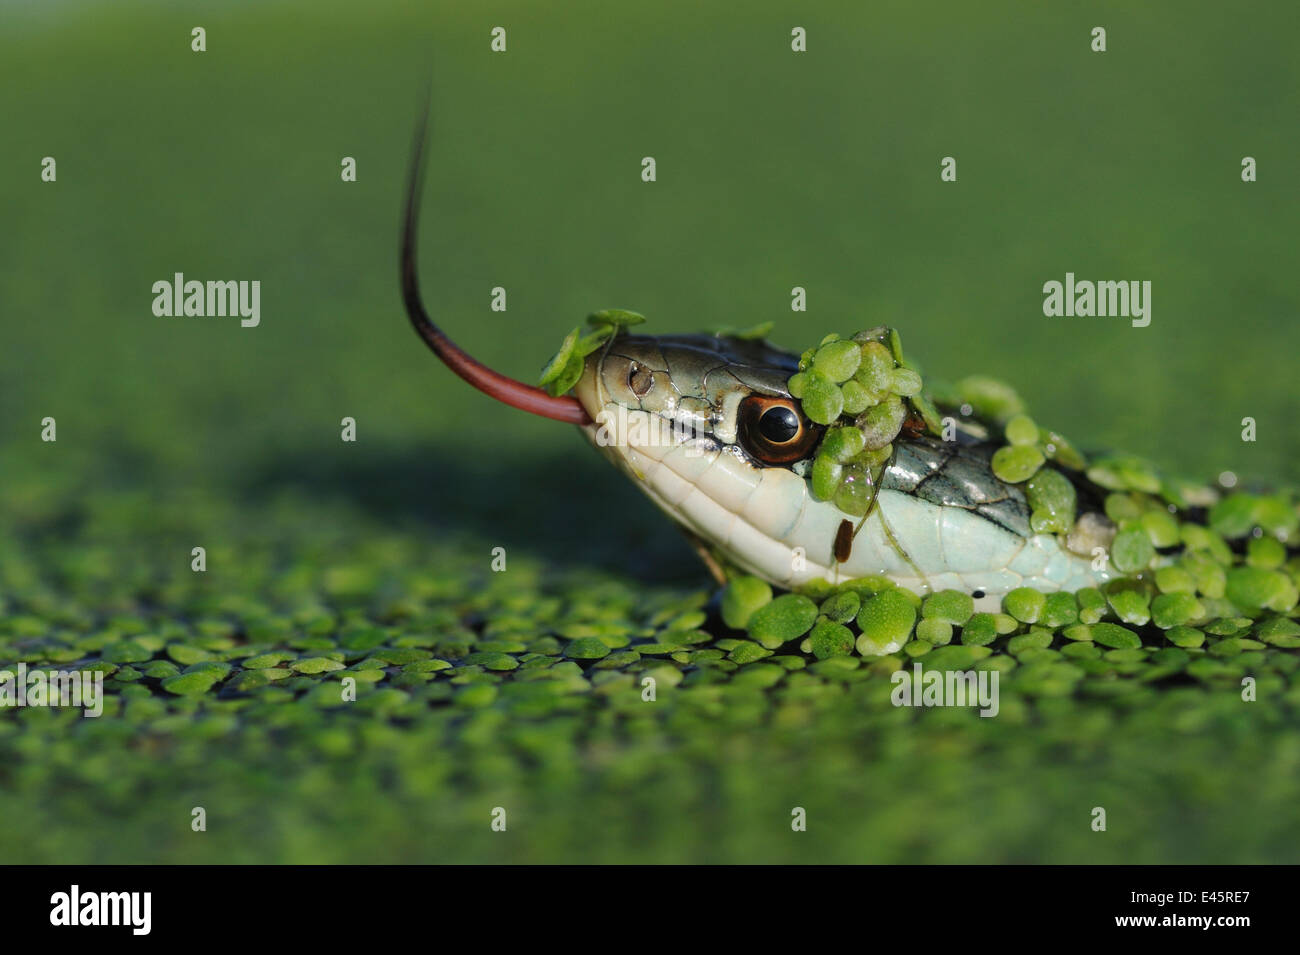 Head portrait of Gulf Coast Ribbon snake (Thamnophis proximus orarius) covered in duckweed and swimming, with tongue - Stock Image